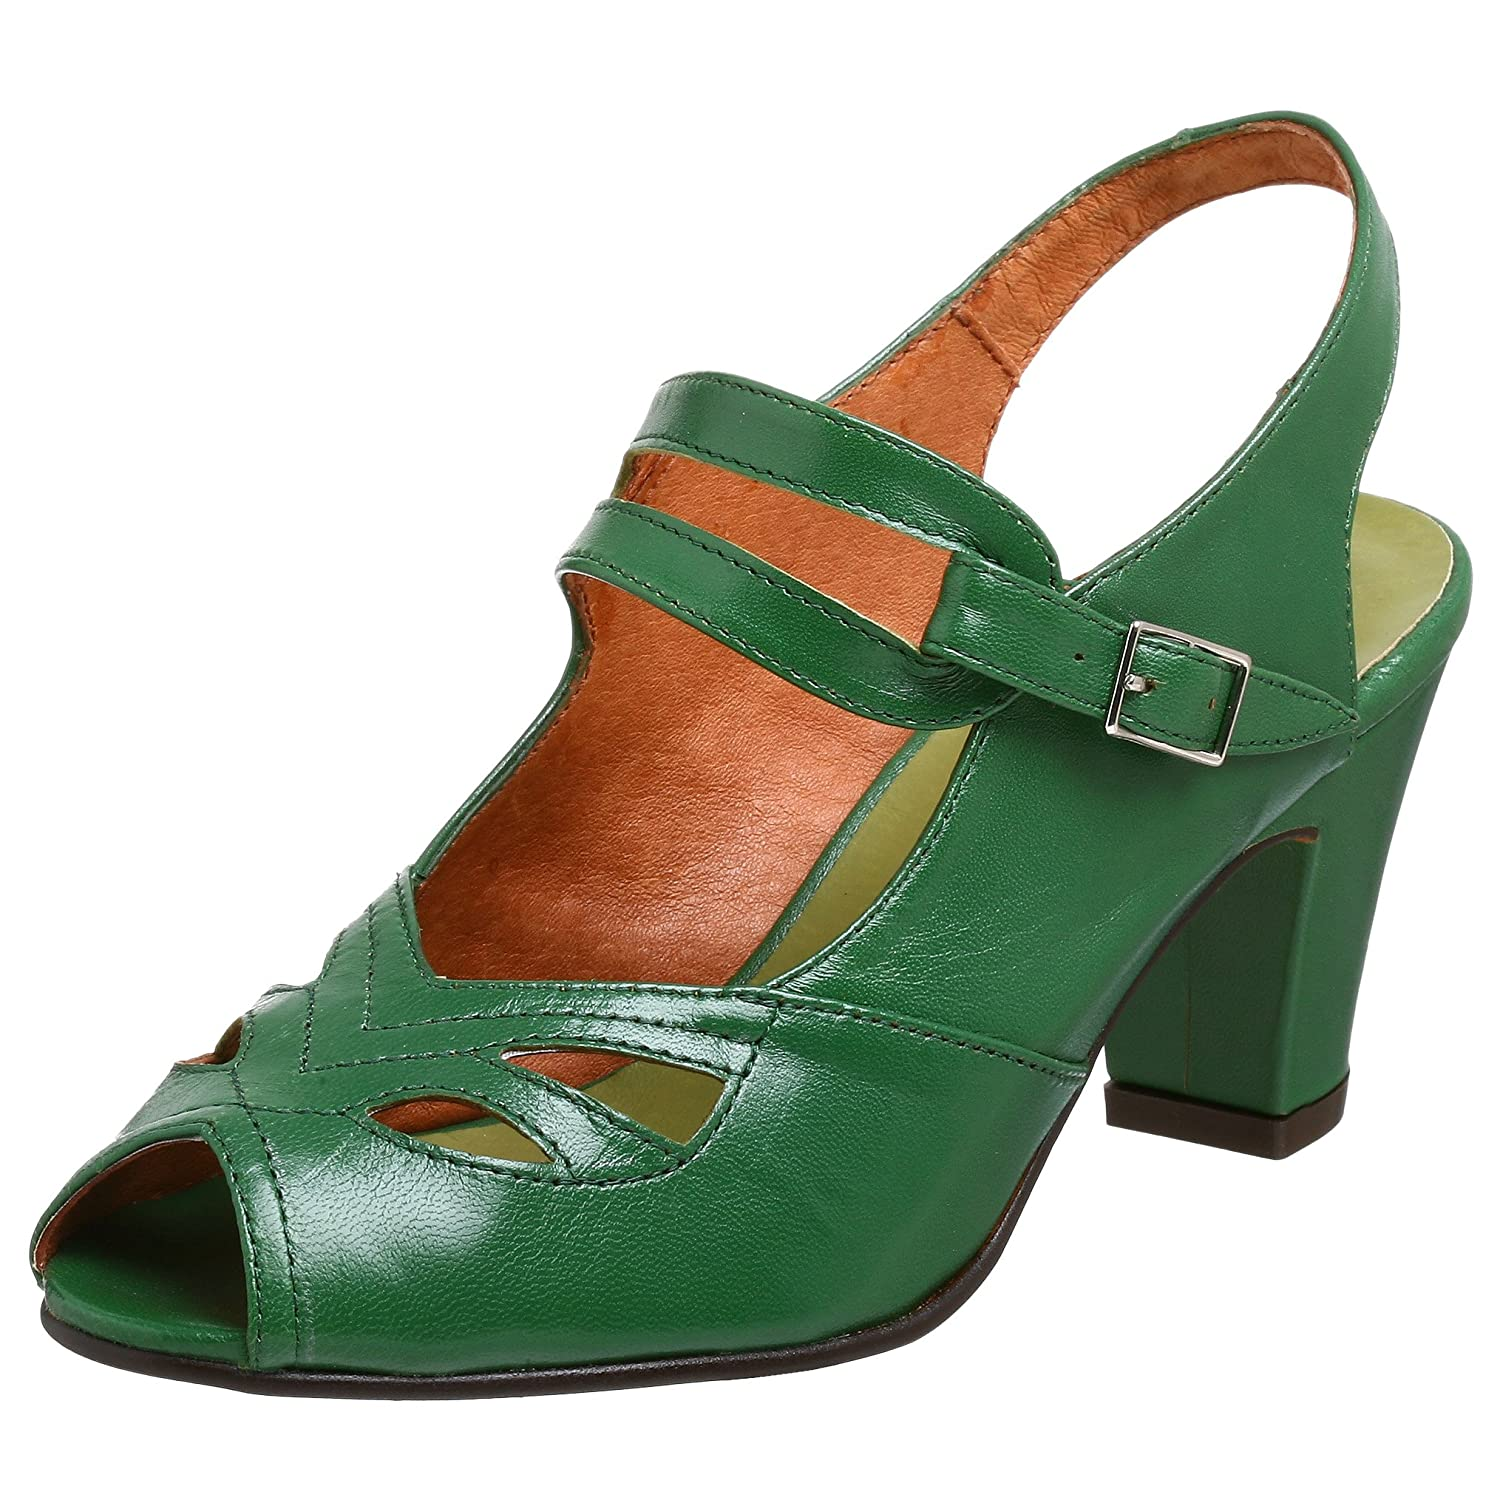 Re-Mix Vintage Women's Anita Sandal - Free Overnight Shipping & Return Shipping: Endless.com :  retro heels leather sole vintage